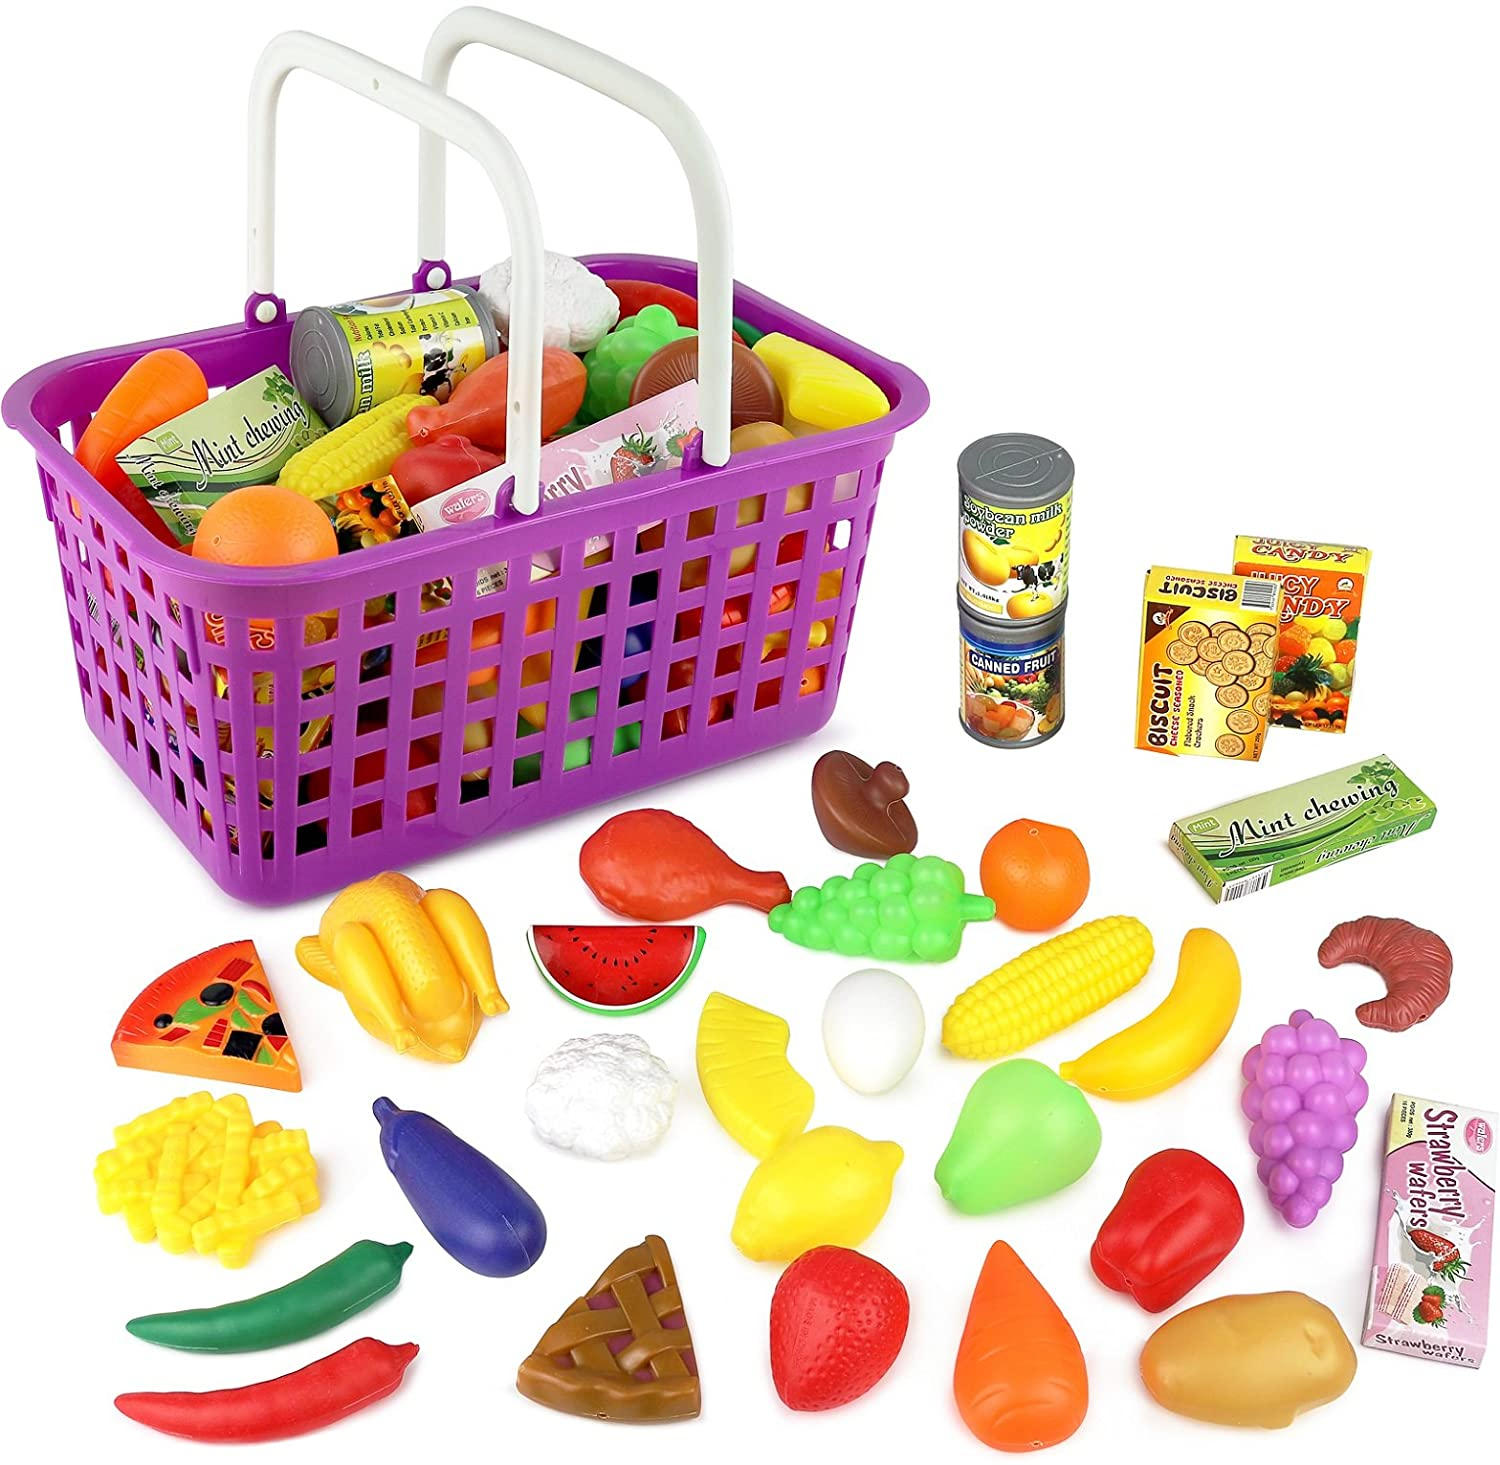 Amazon n Play 33 Pc Kids Pretend Play Grocery